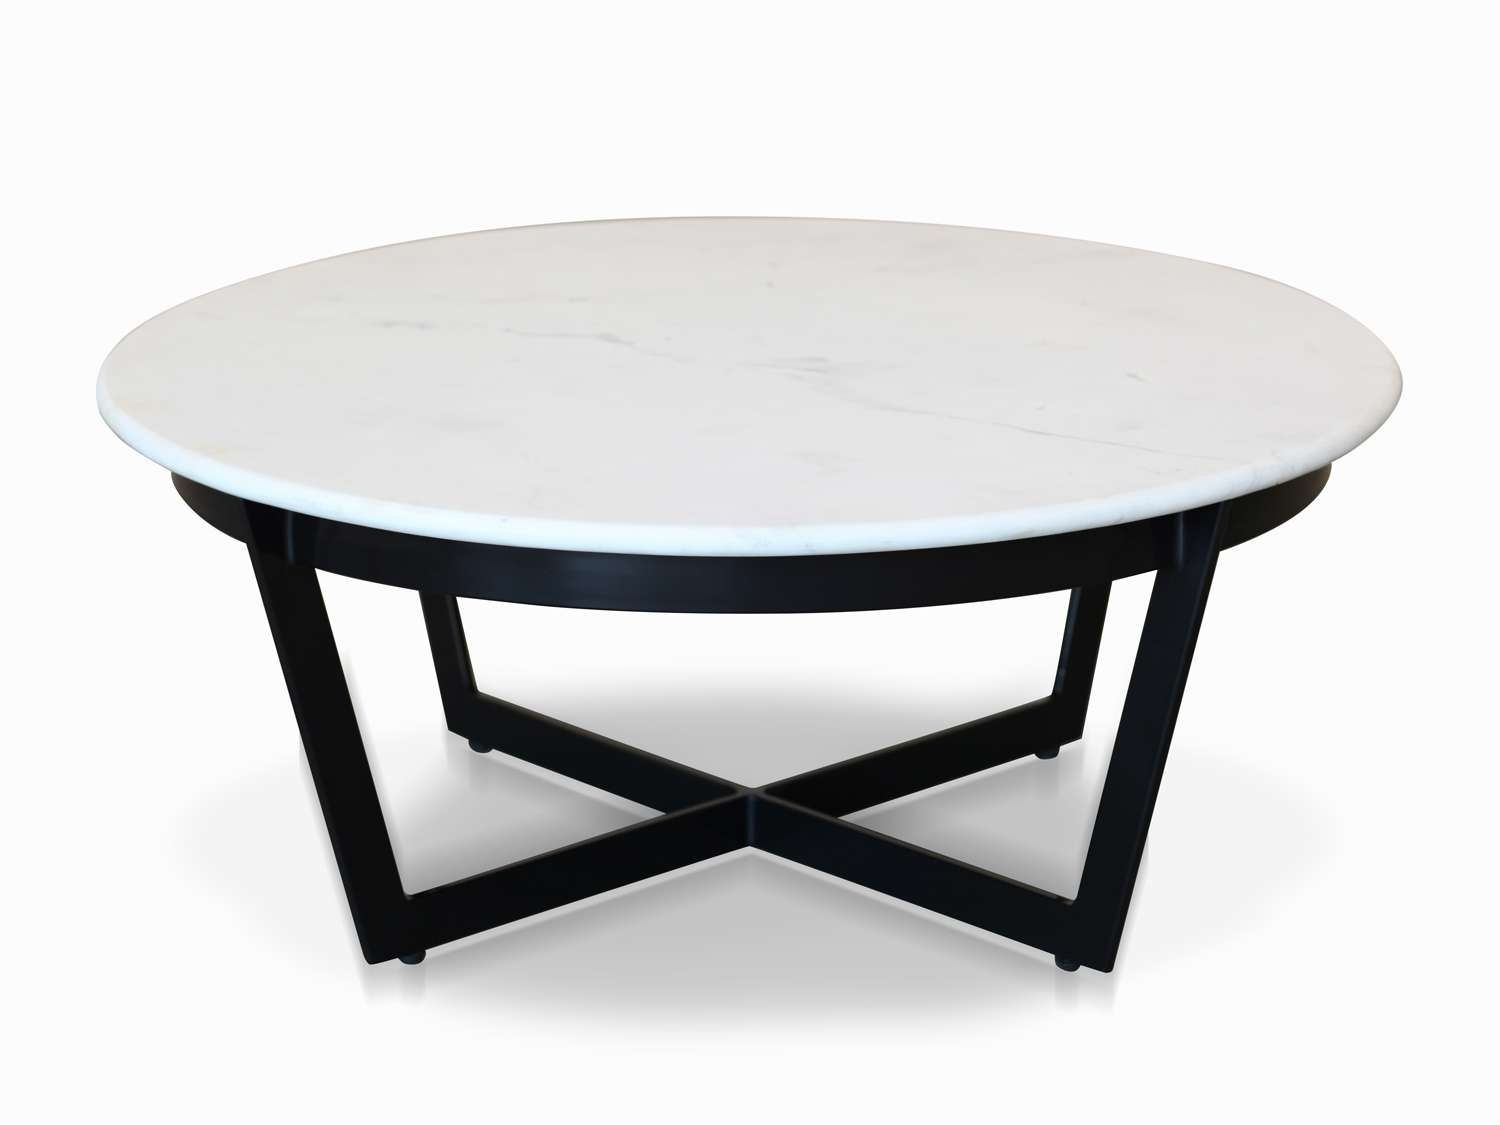 Best And Newest Marble Round Coffee Tables For Round Marble Coffee Table (View 7 of 20)